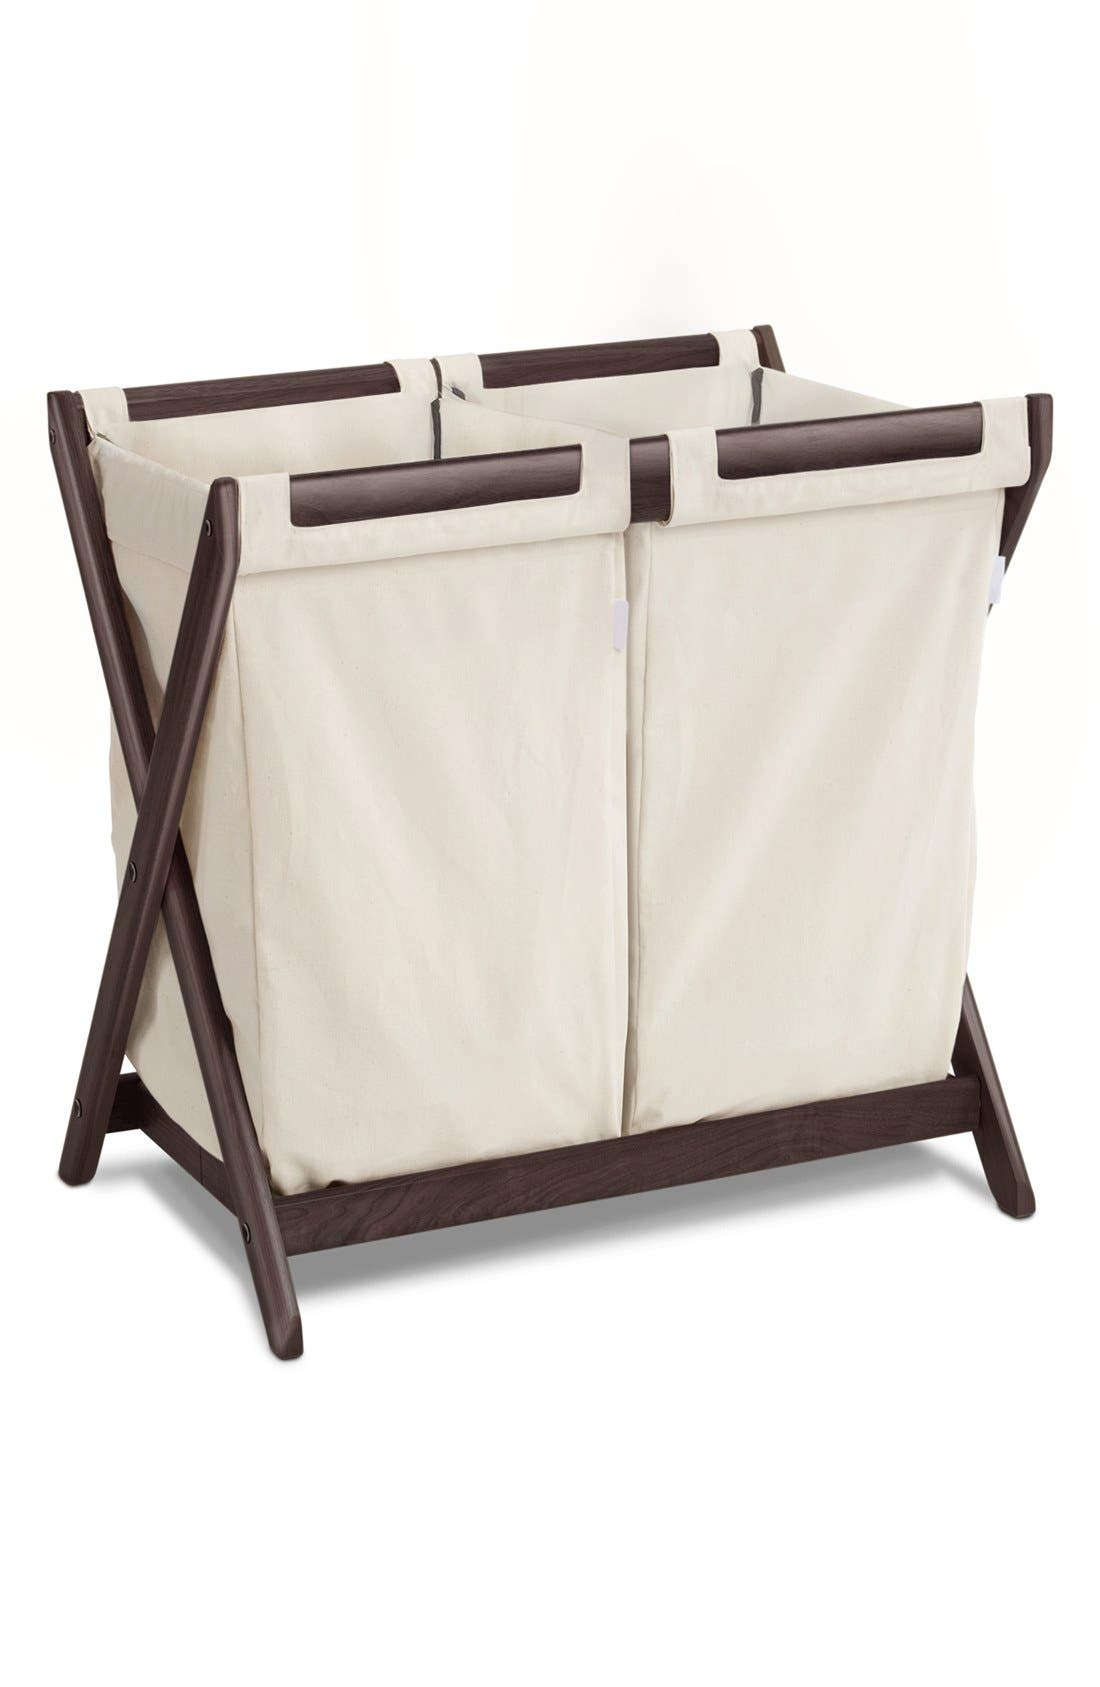 Alternate Image 1 Selected - UPPAbaby VISTA Bassinet Stand Hamper Insert